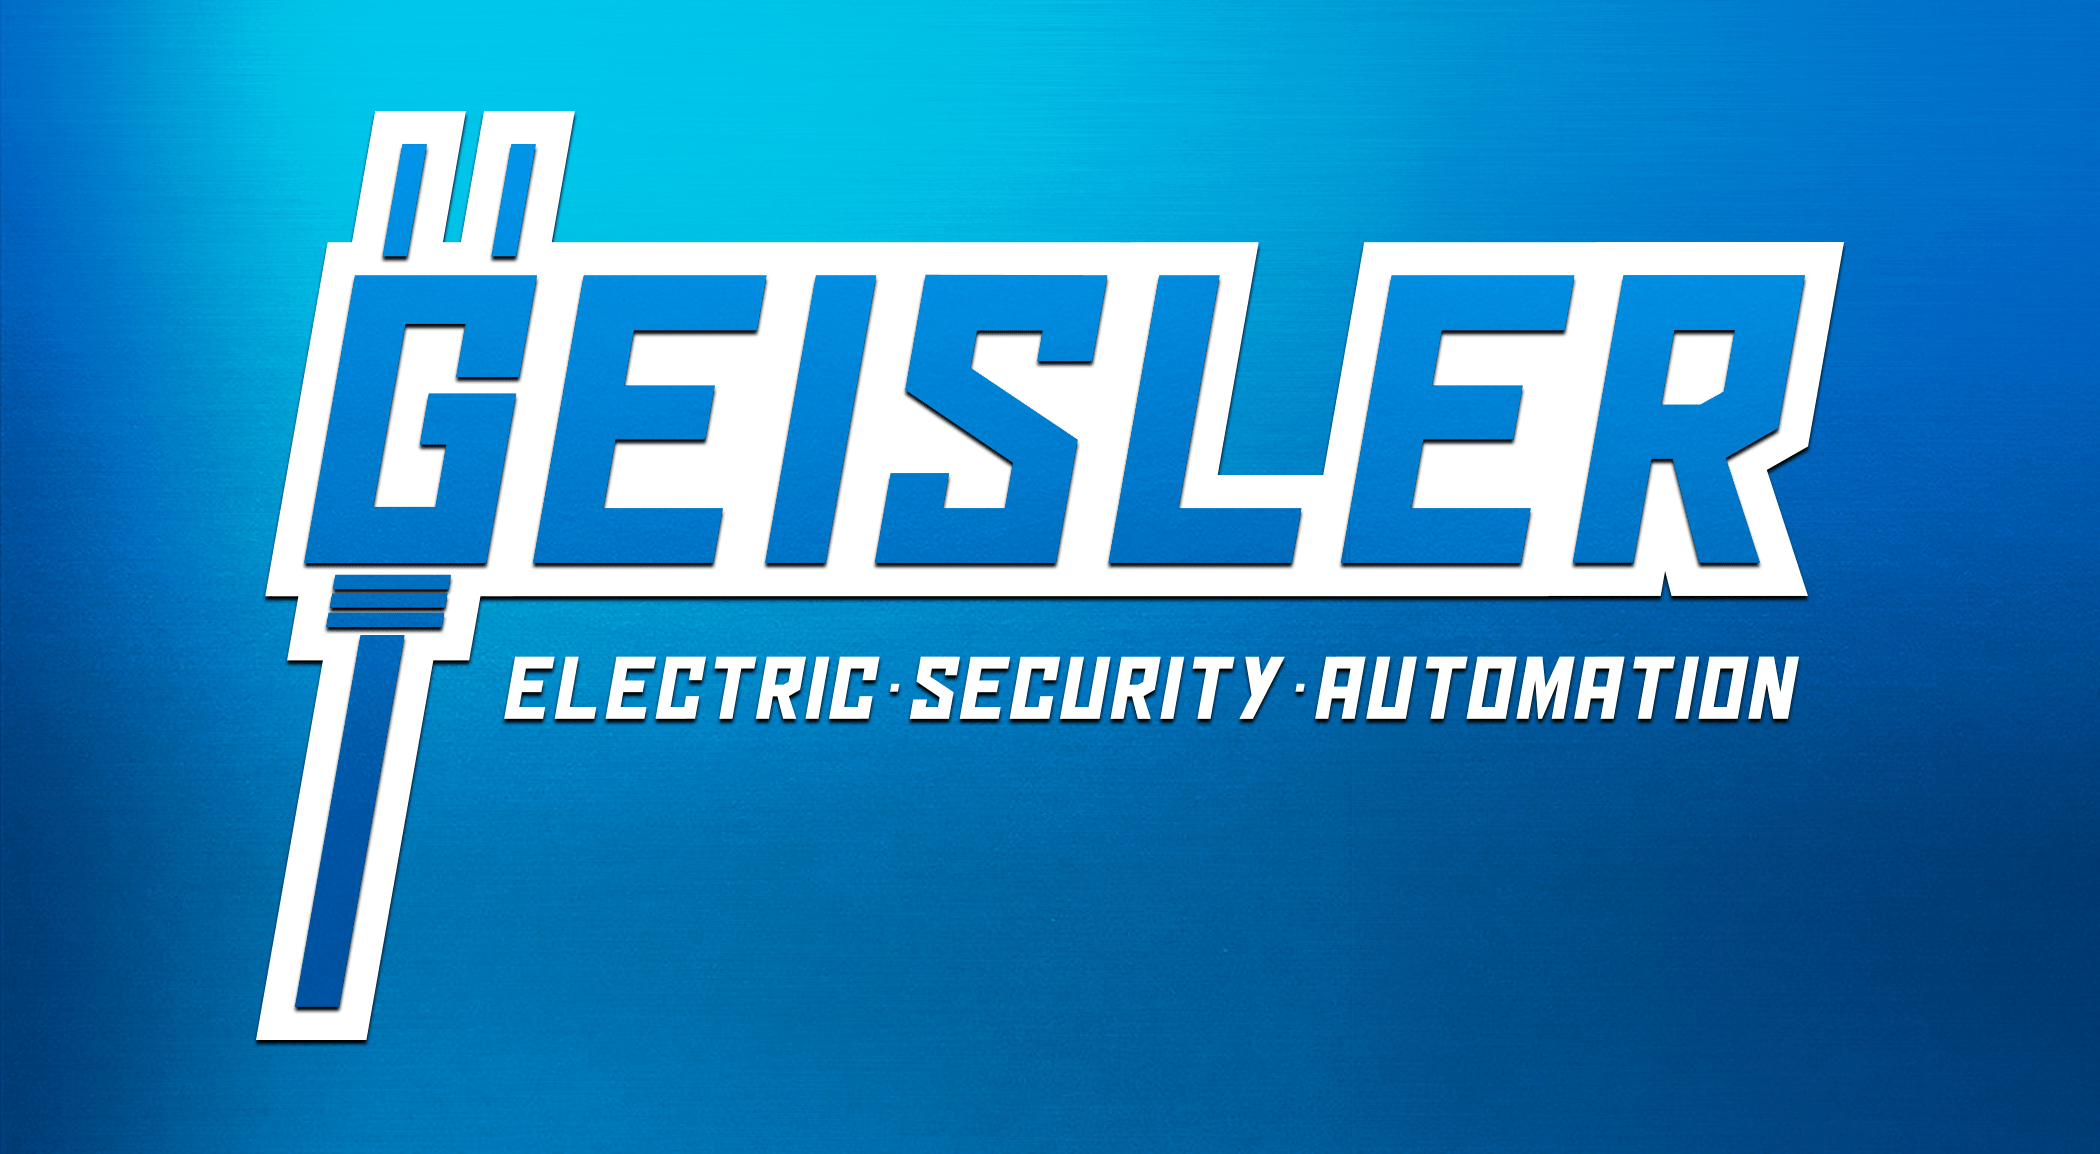 Commercial Electrical Wiring | Geisler Electric Commercial Electrical Wiring Services Manhattan Kansas